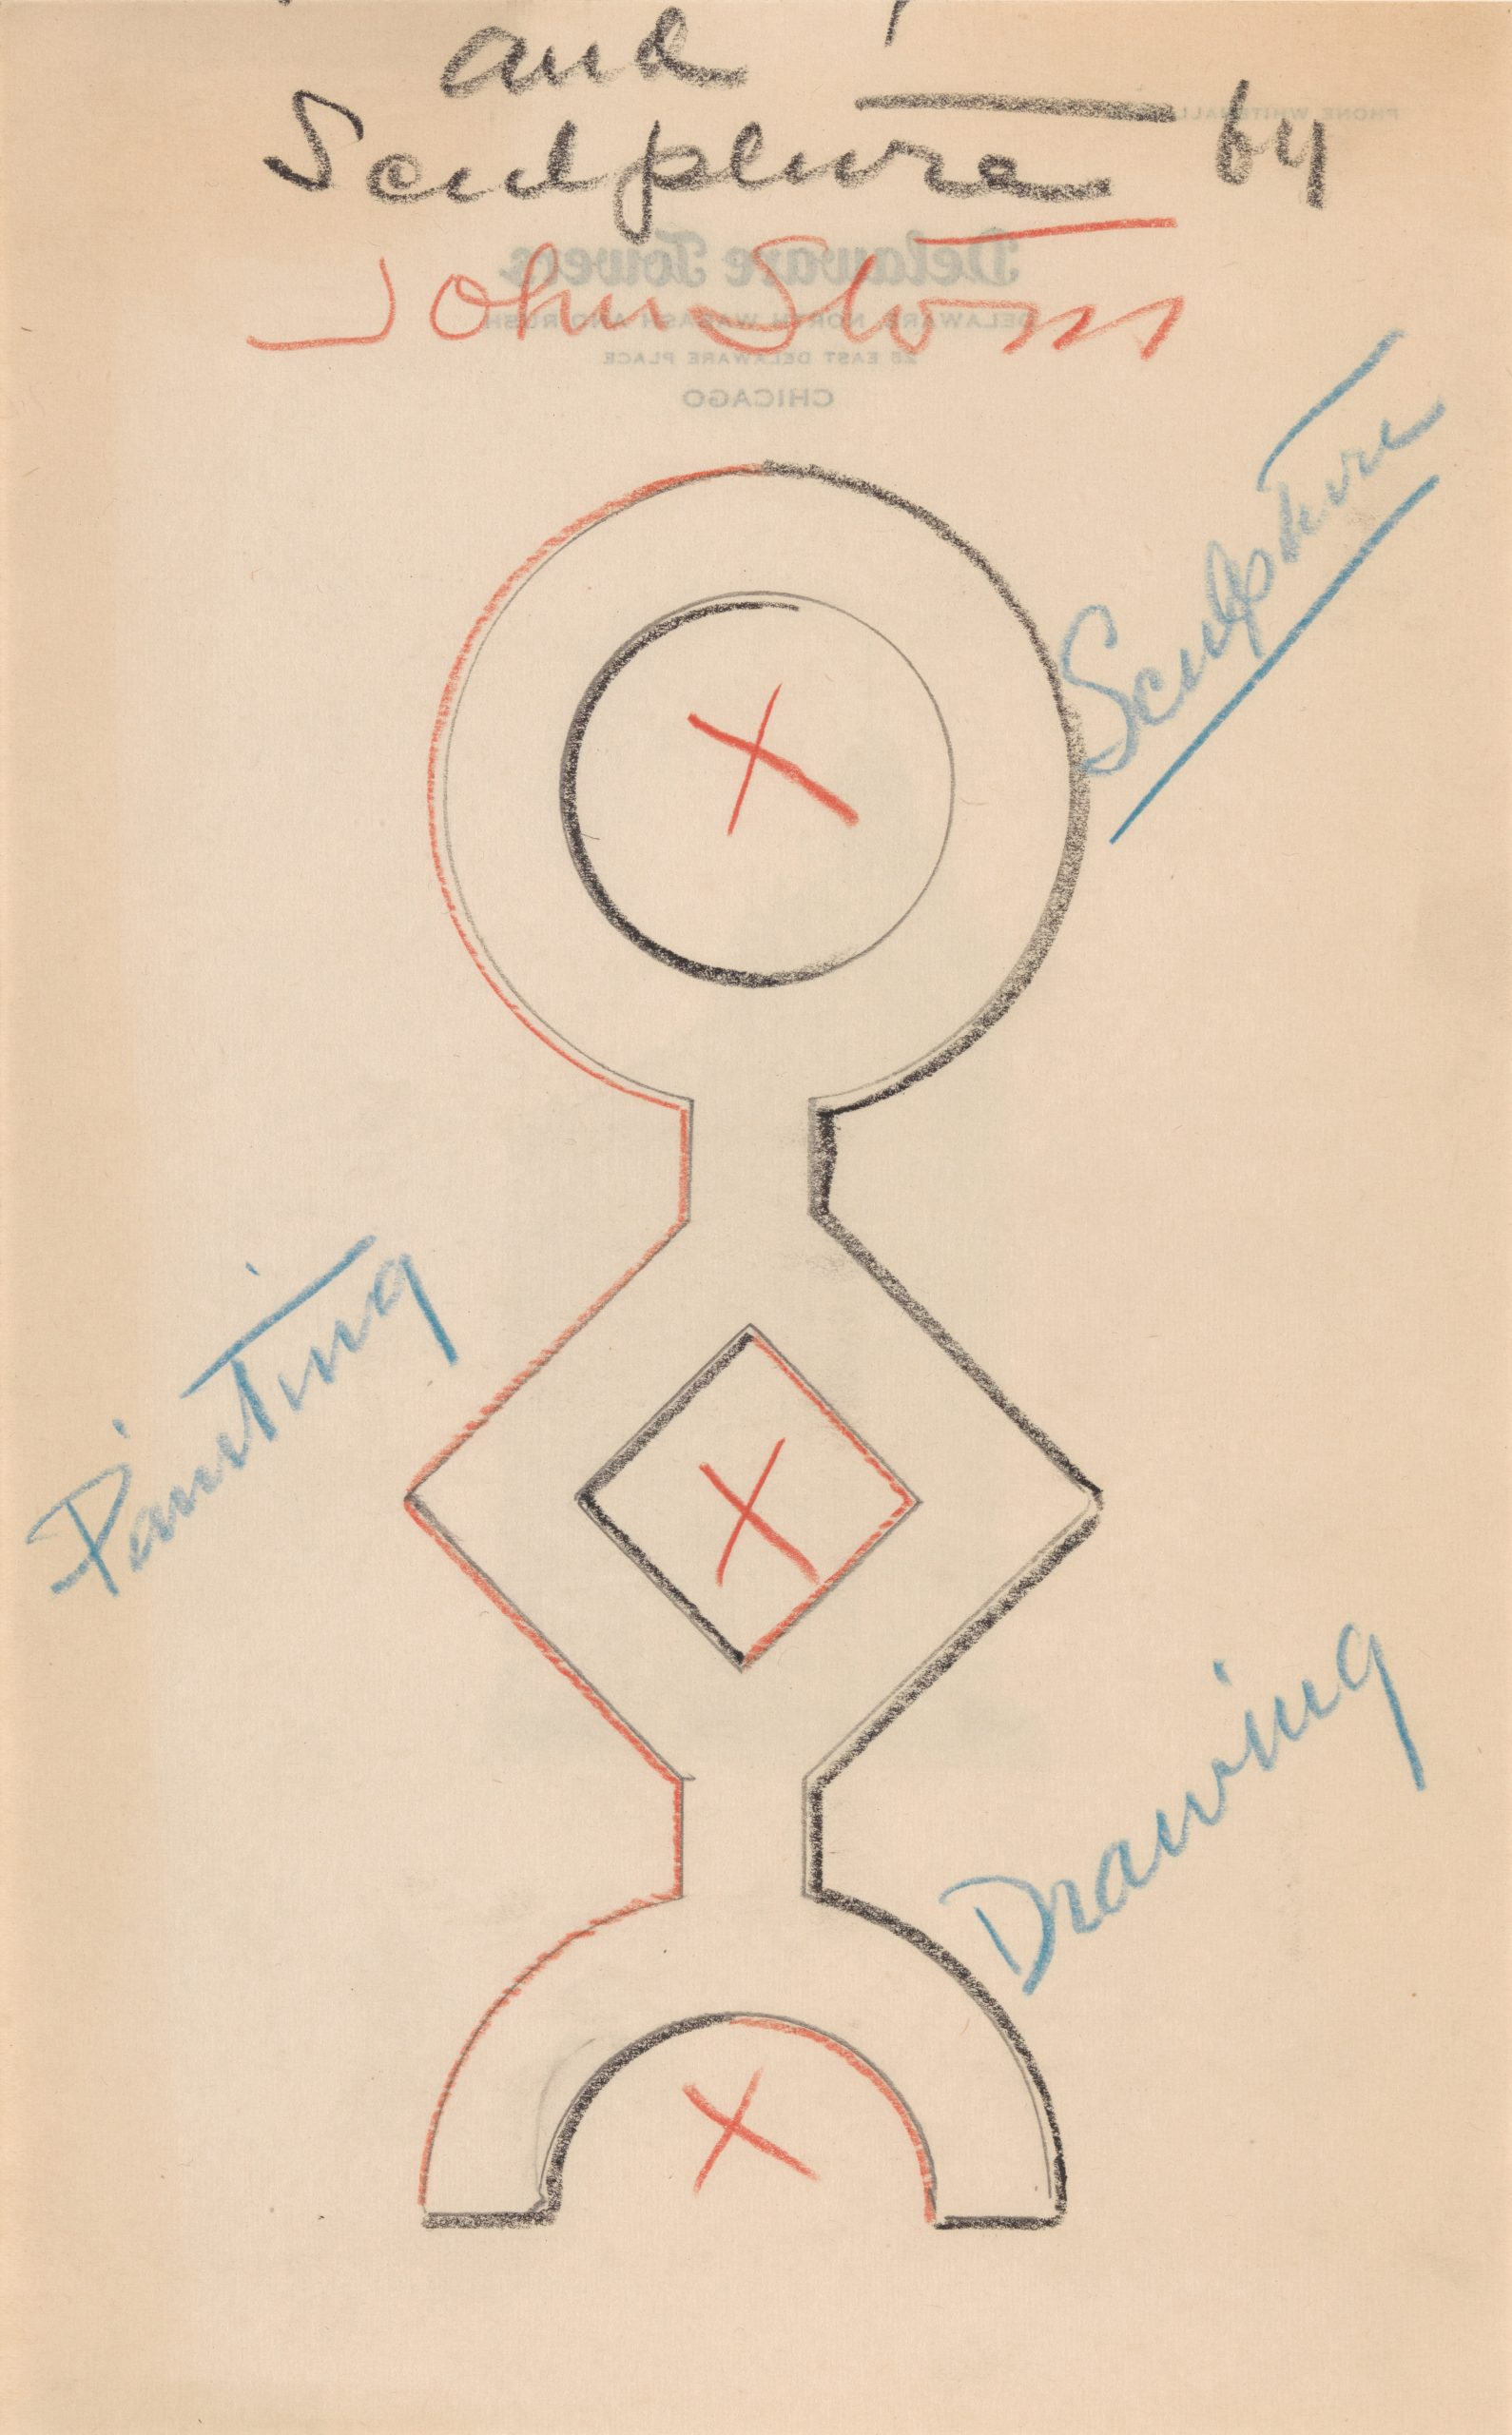 A pencil drawing of a totem-like figure of a circle representing sculpture, a diamond representing painting and a half circle representing drawing.